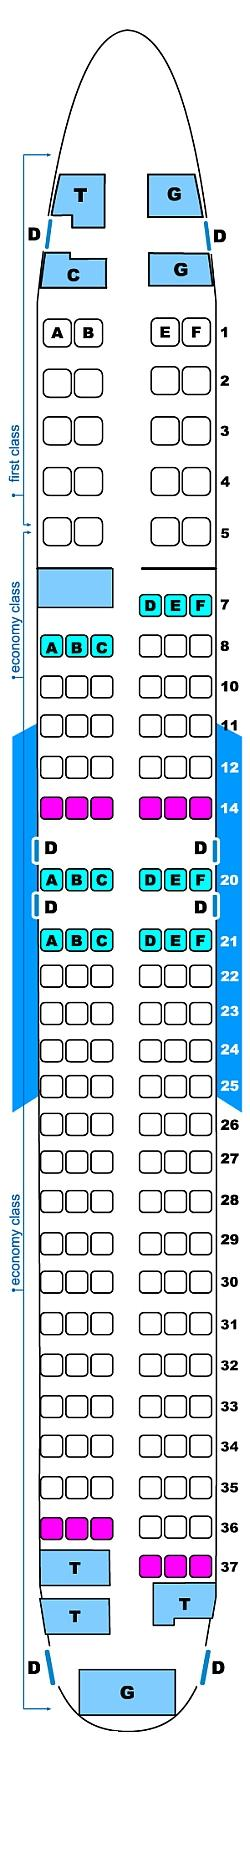 Seat map for Continental Airlines Boeing B737 800 (20/132)